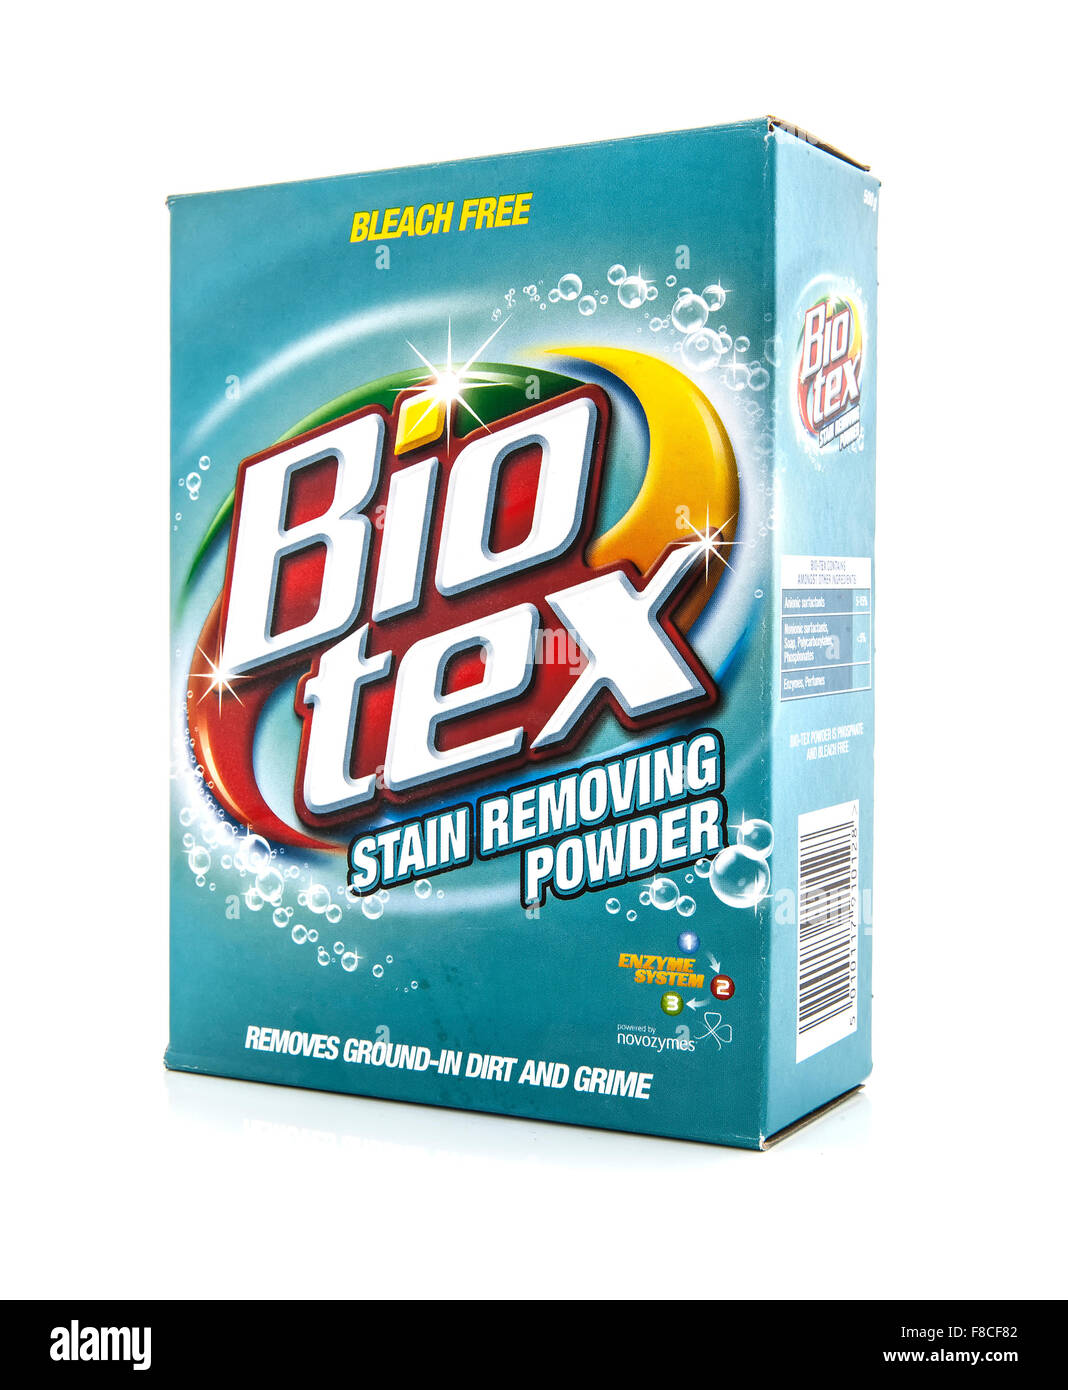 Background image remover free - Box Of Bio Tex Bleach Free Stain Removing Powder On A White Background